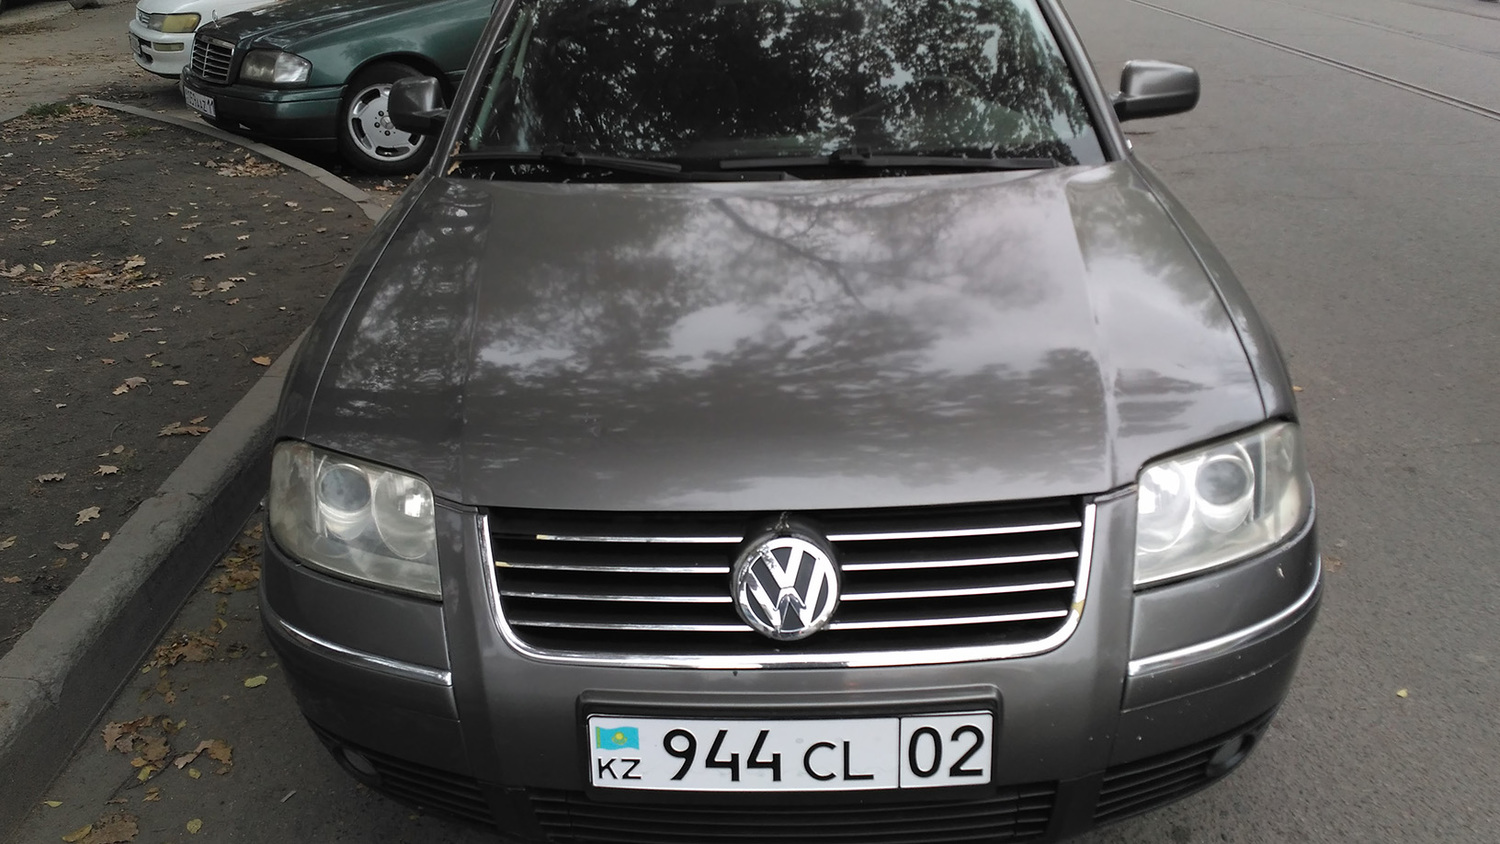 "<span style=""font-weight: bold;"">VW Passat</span>"